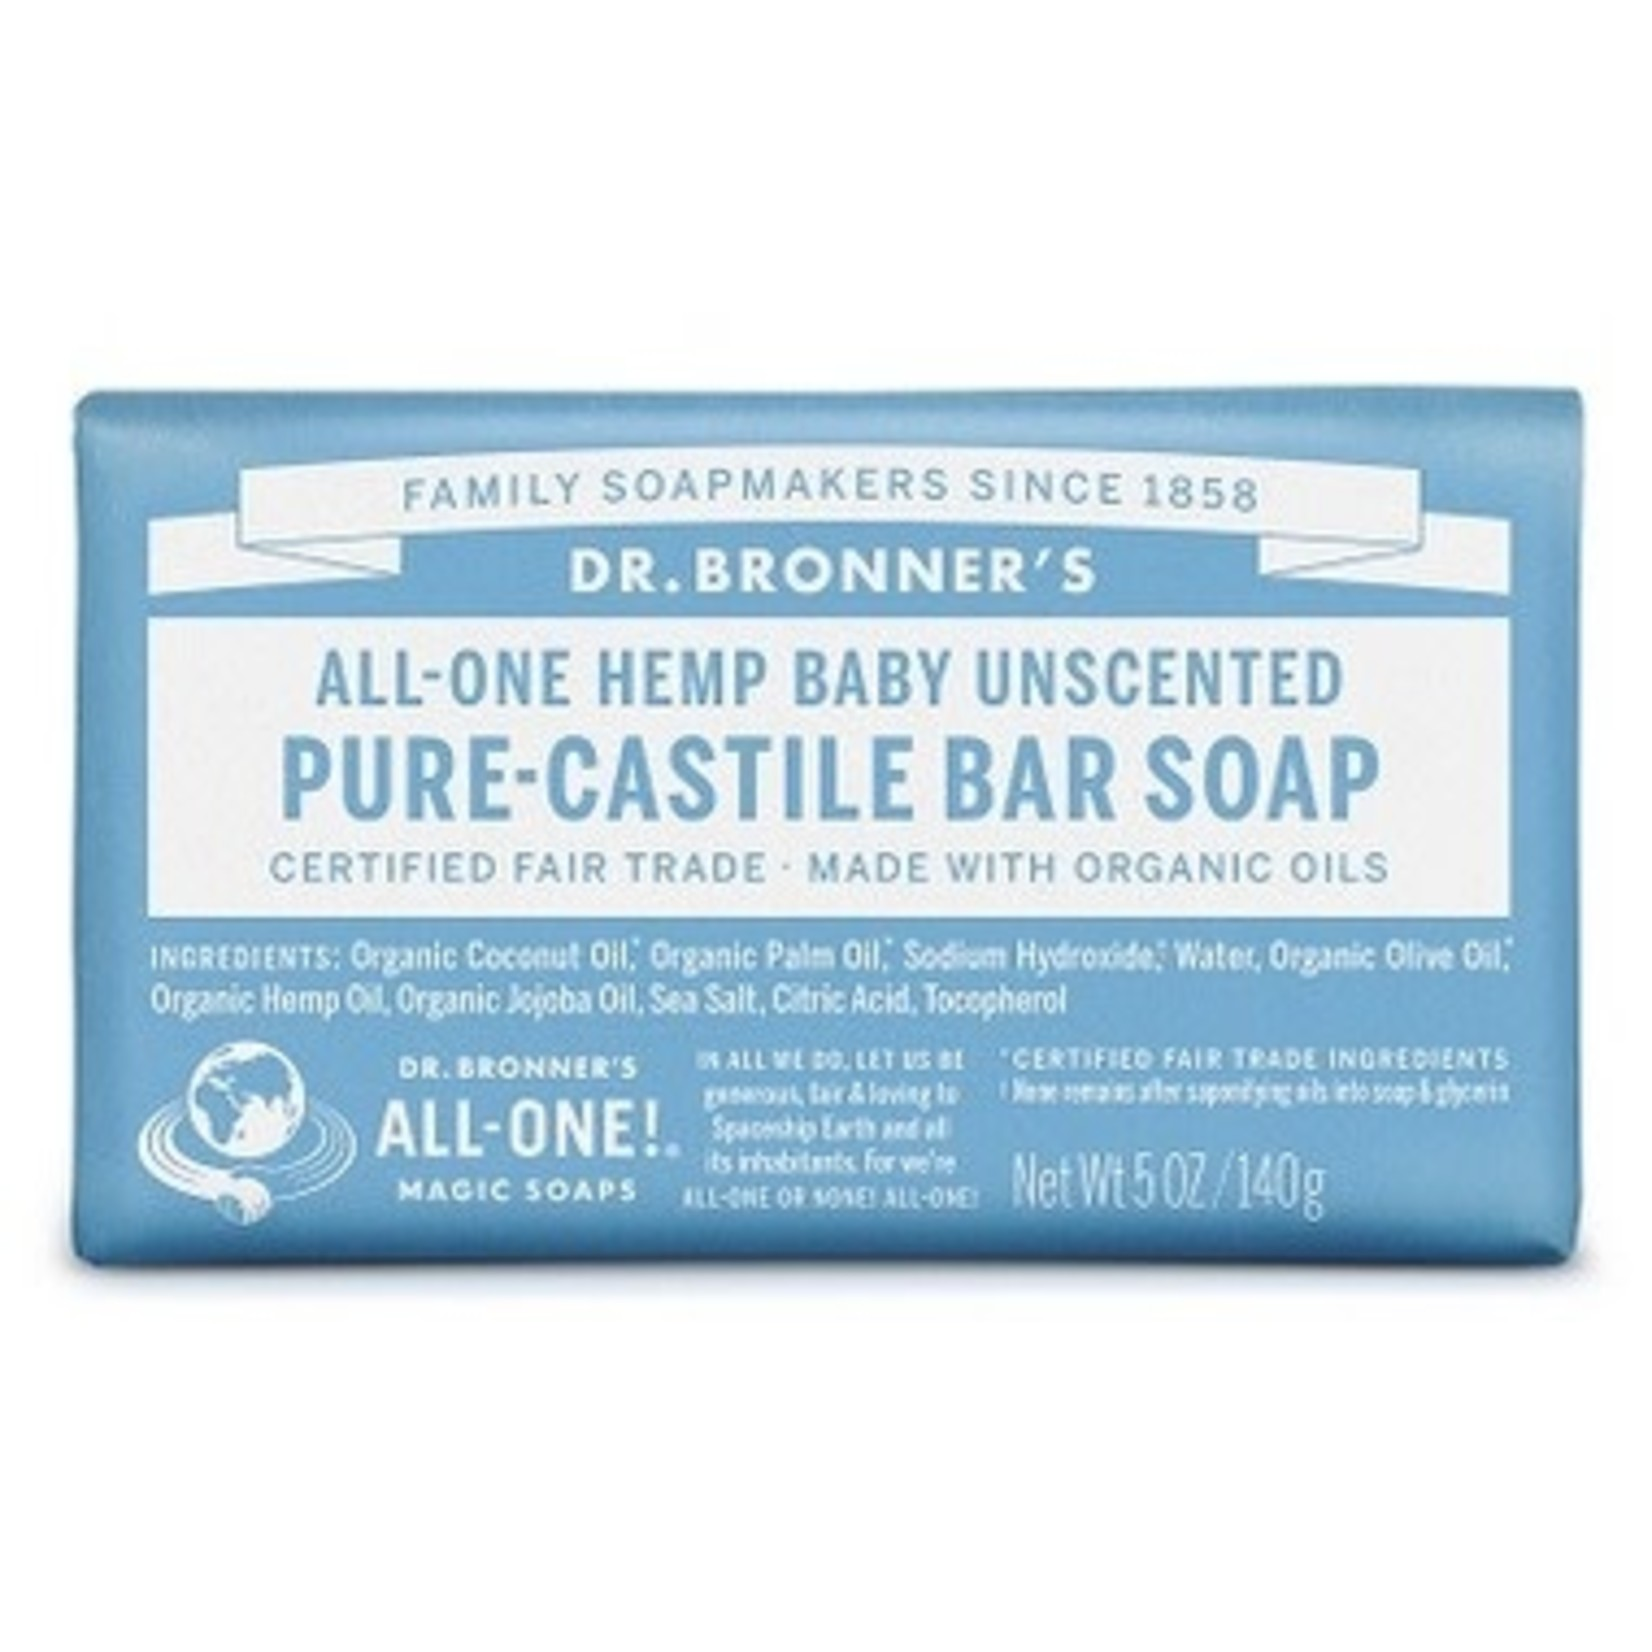 DR. BRONNER'S Pure-Castile Bar Soap - Baby (Unscented)